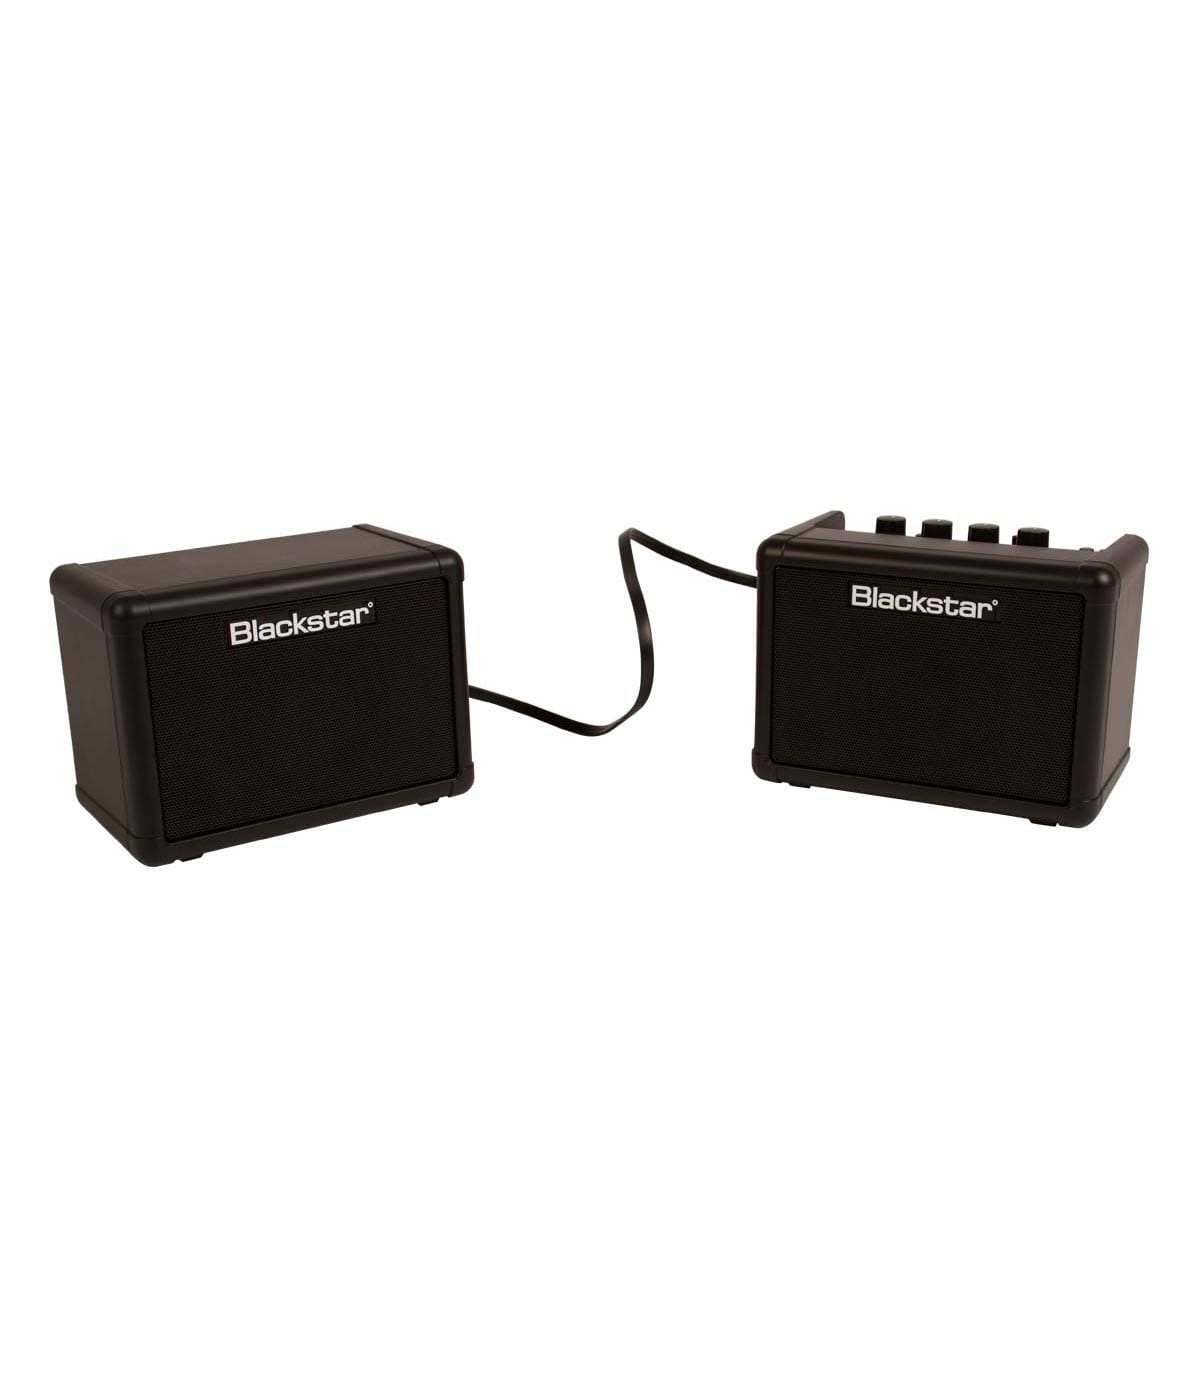 Blackstar - Fly Stereo Pack 6 Watt Black - Melody House Musical Instruments